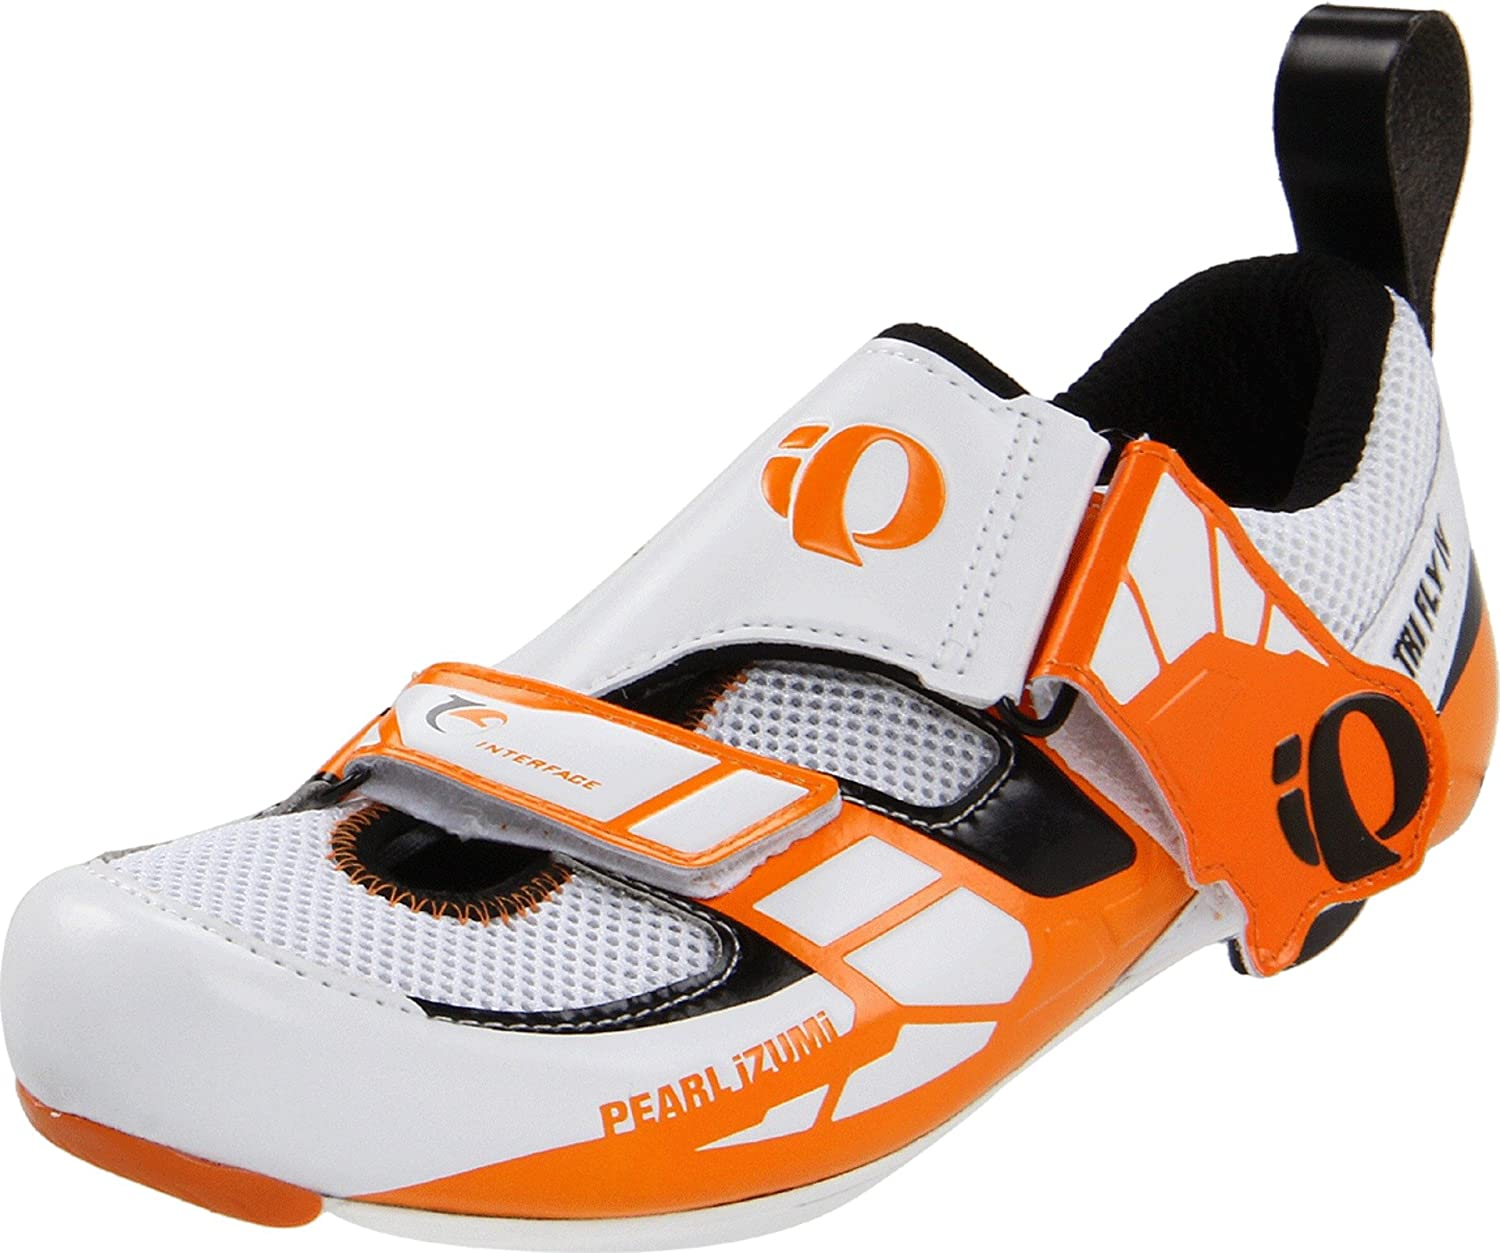 Pearl Izumi Men's Tri Fly IV Carbon Cycling shoes